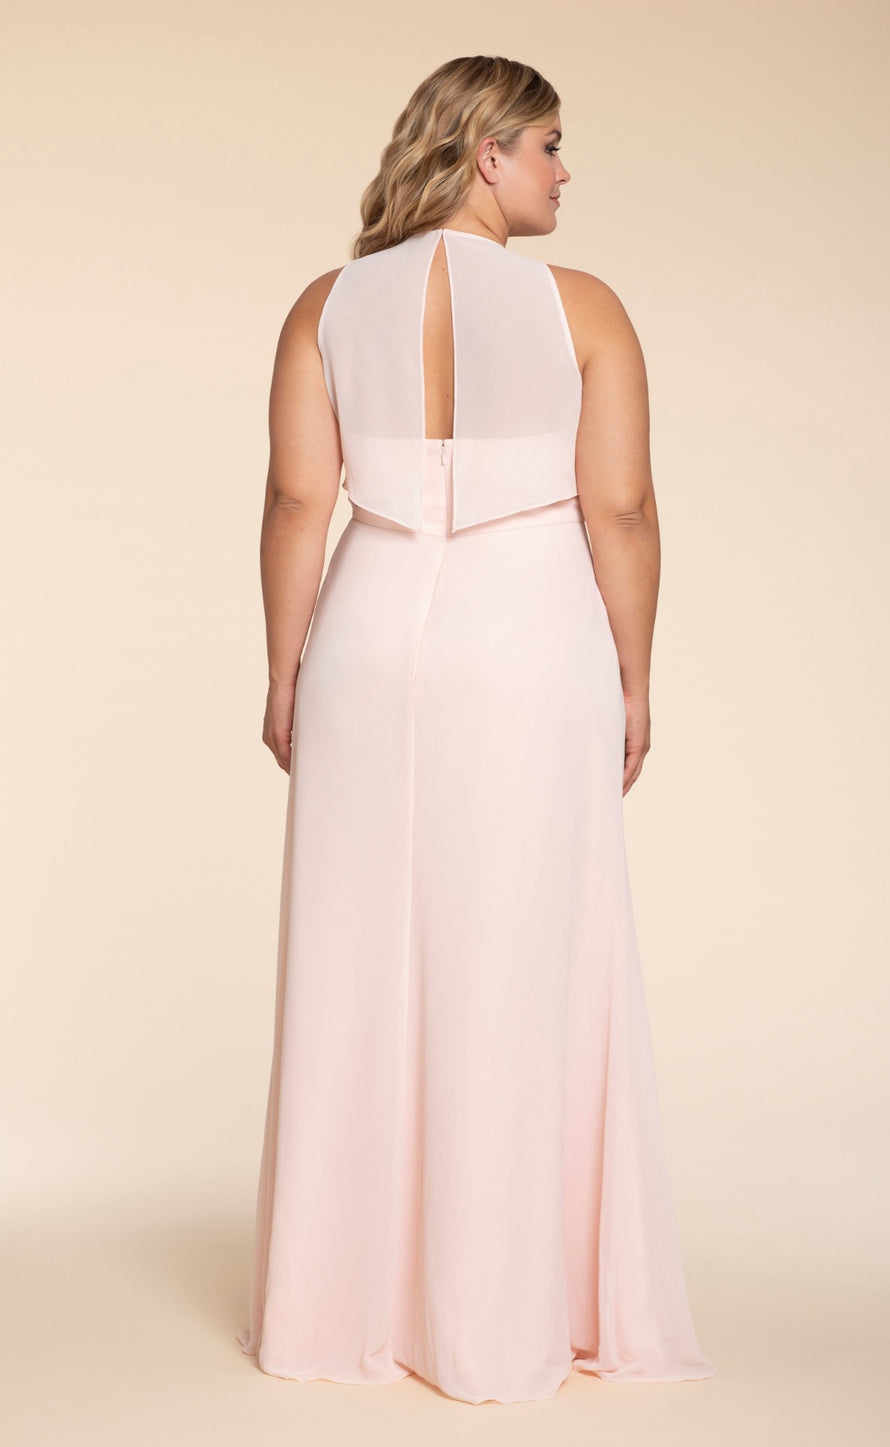 Hayley Paige Occasions Plus Size Long Bridesmaid Dress - w714 back